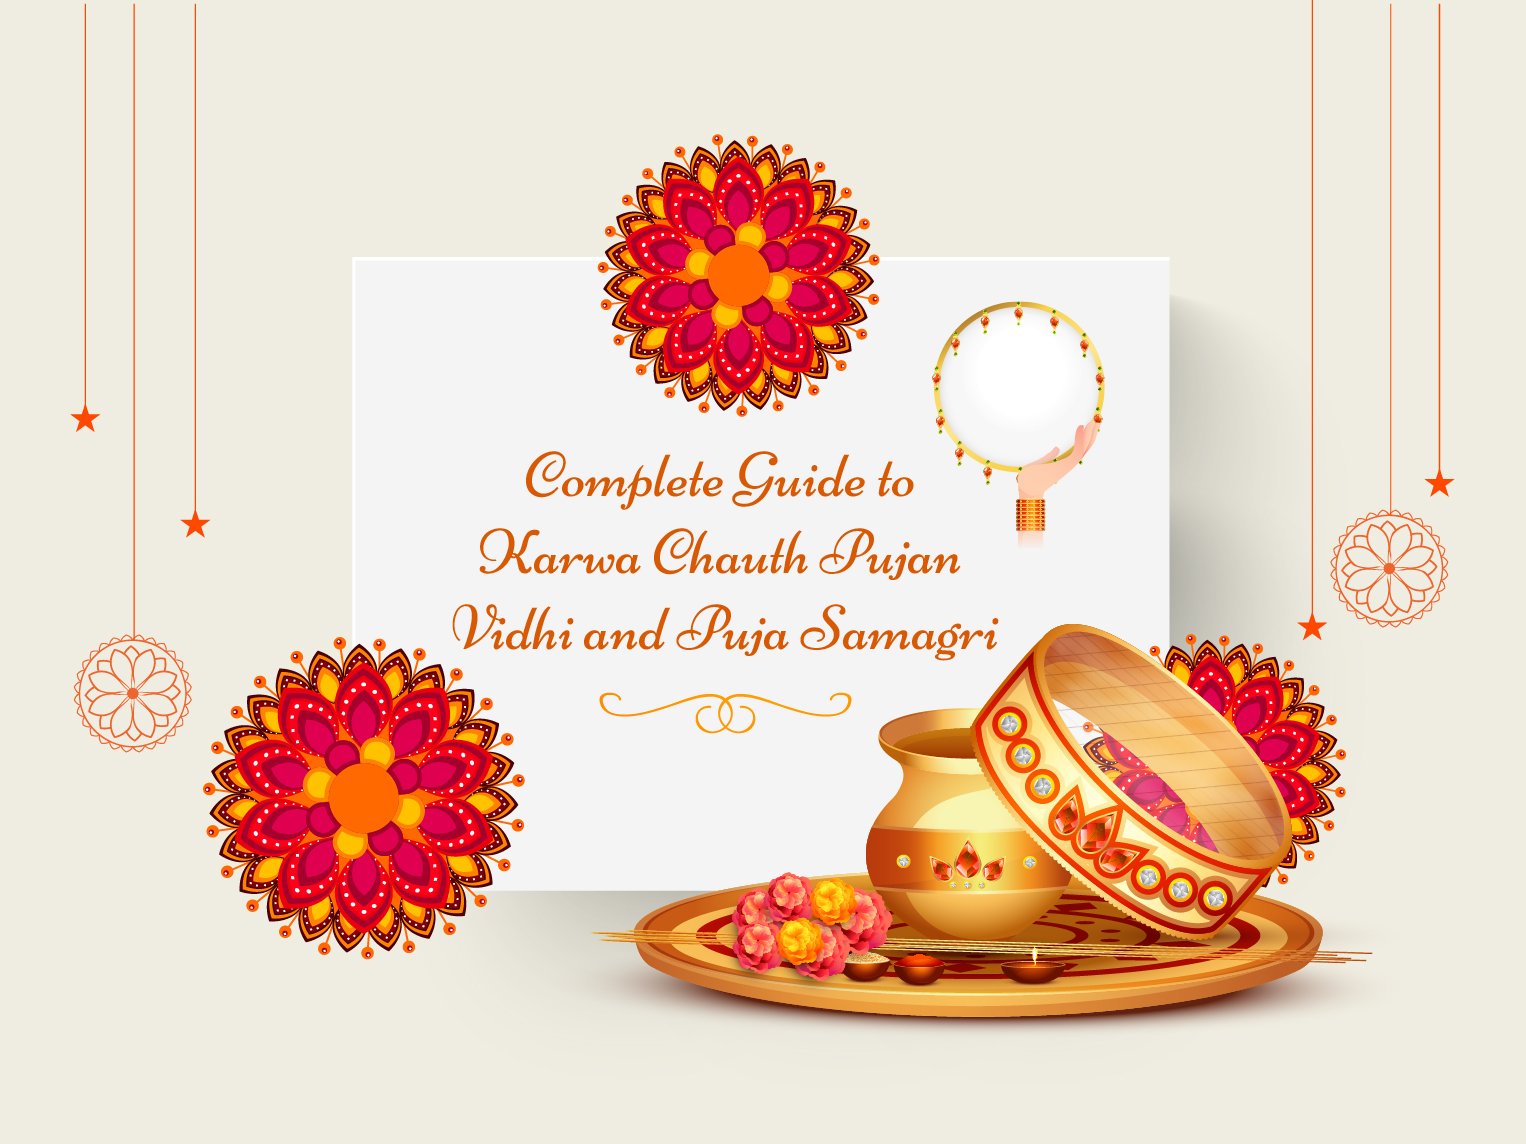 Complete Guide to Karwa Chauth Pujan Vidhi and Puja Samagri